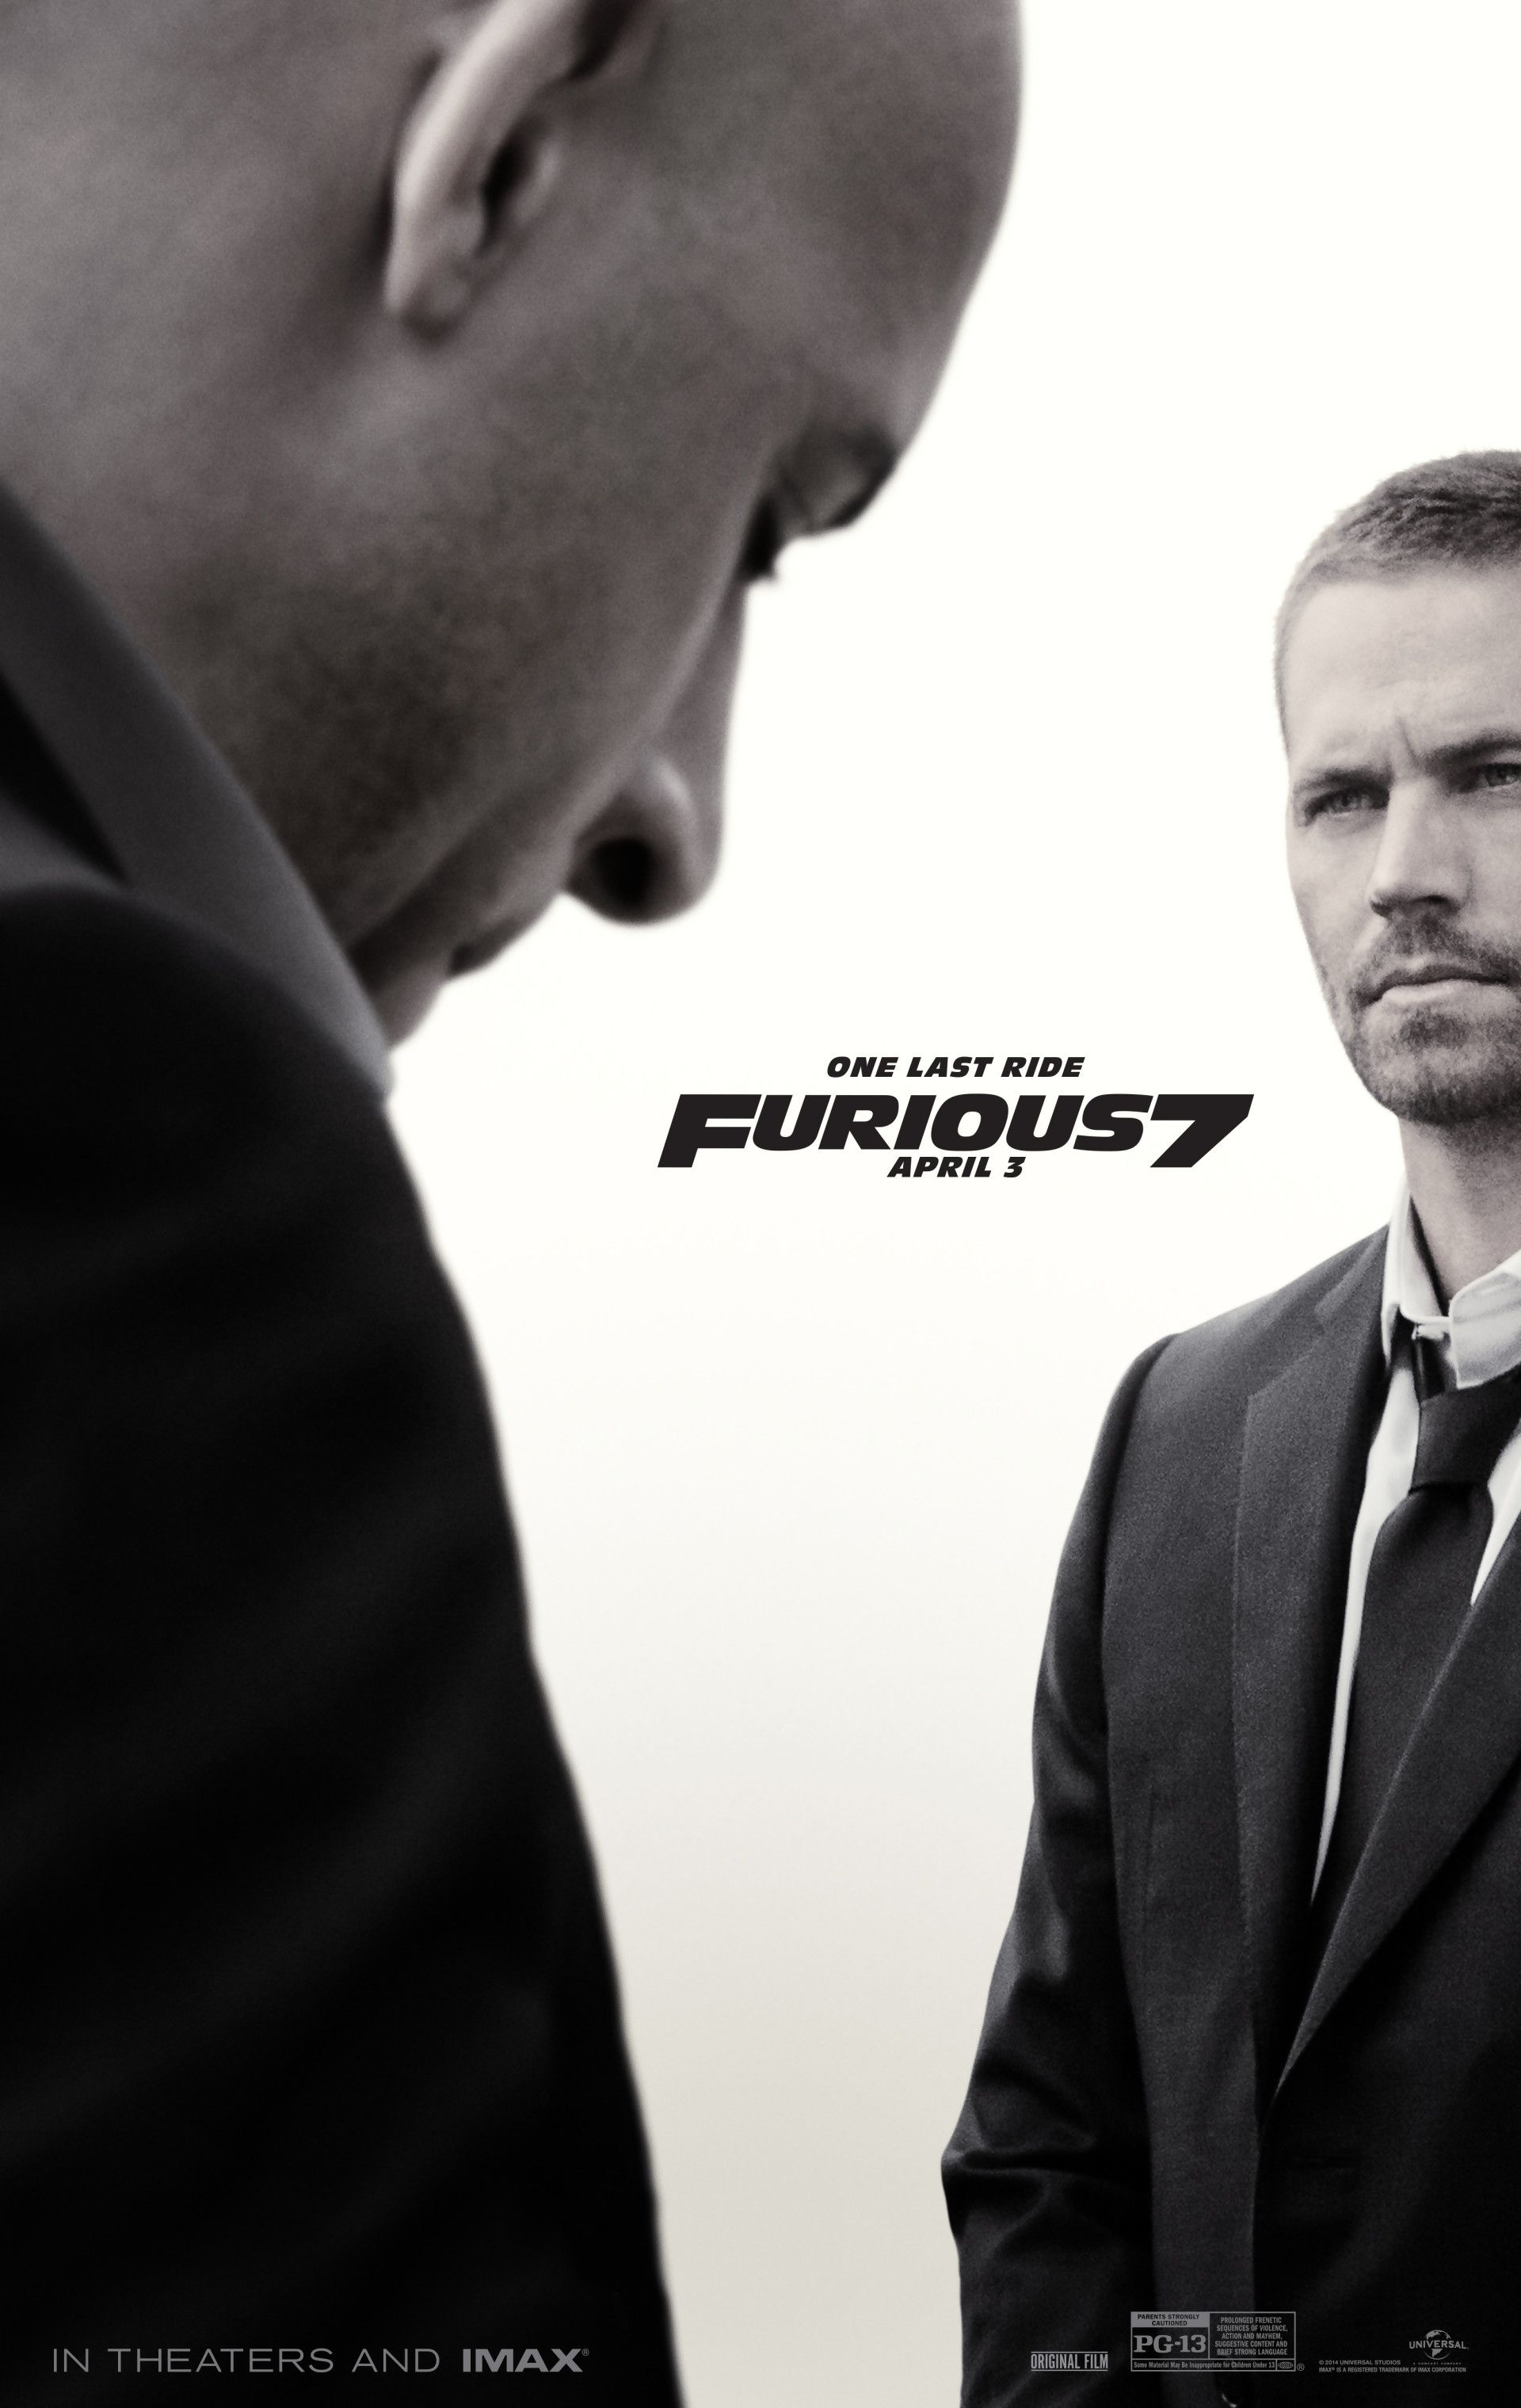 'Furious 7' Still King at the Box Office, 'Ex Machina' Gains Popularity